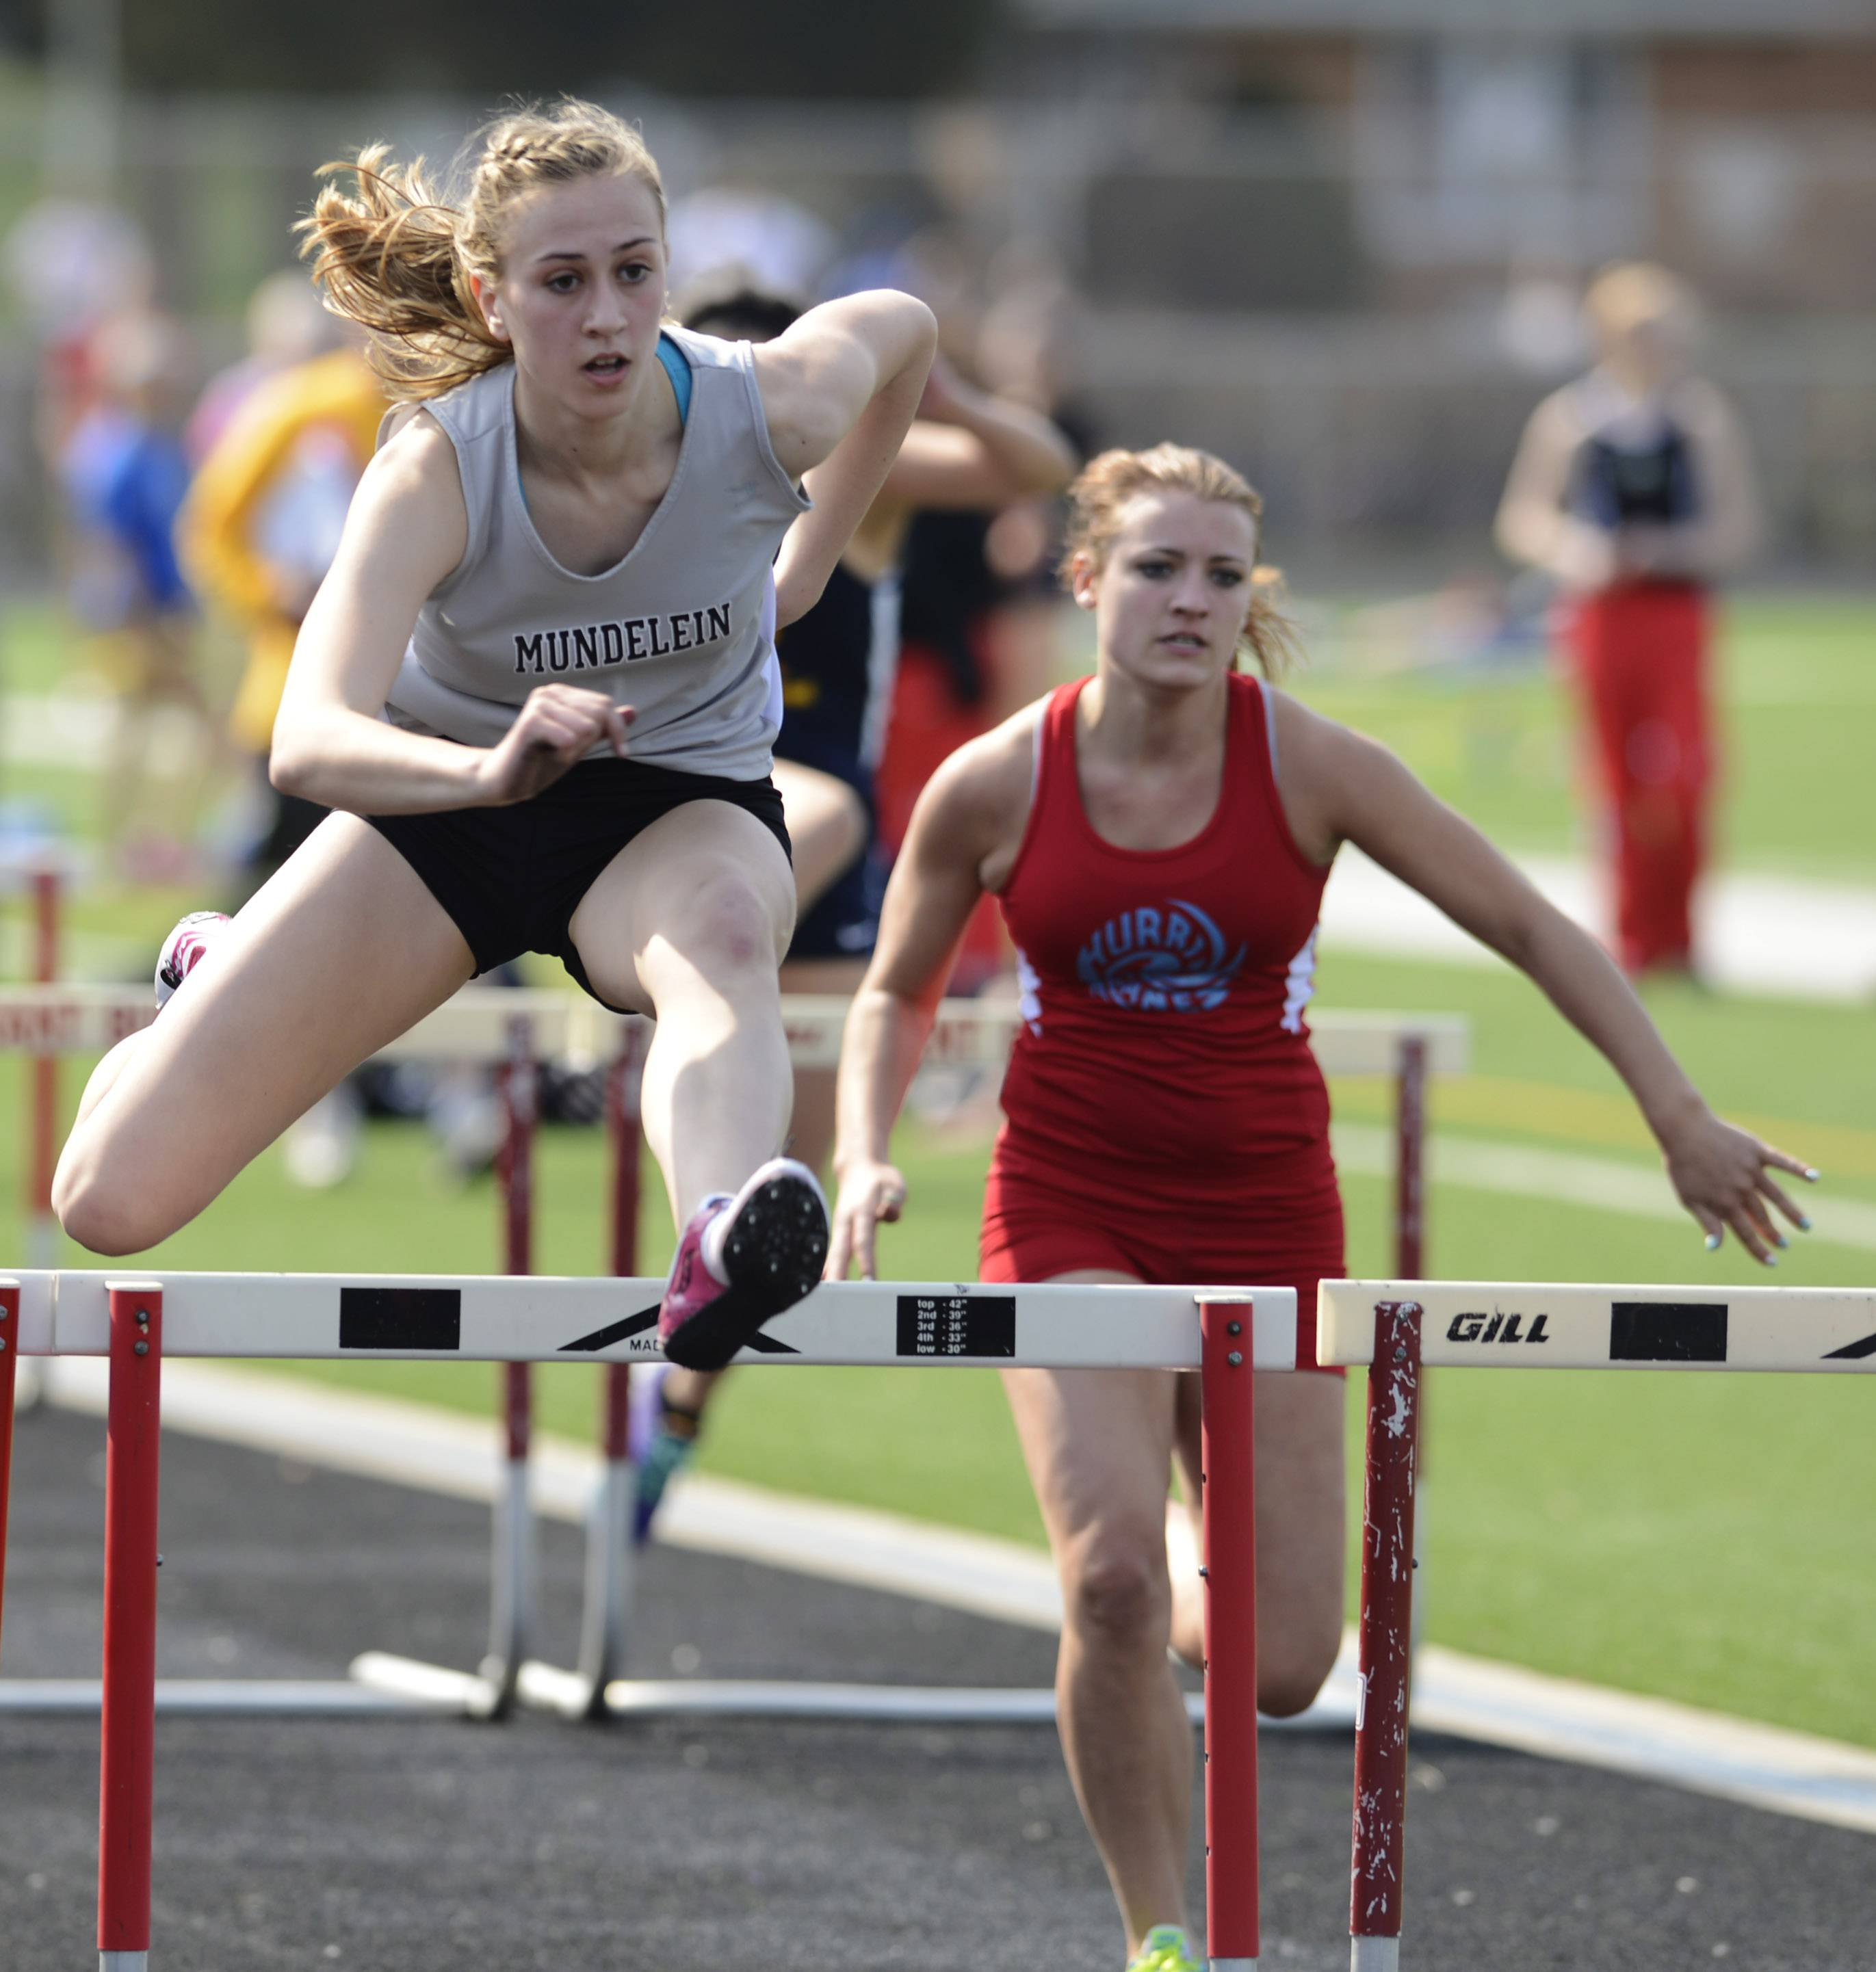 Mundelein's Katie Stanczykiewicz clears the last hurdle during the 100-meter high hurdles during Saturday's track meet at Grant High School in Fox Lake.